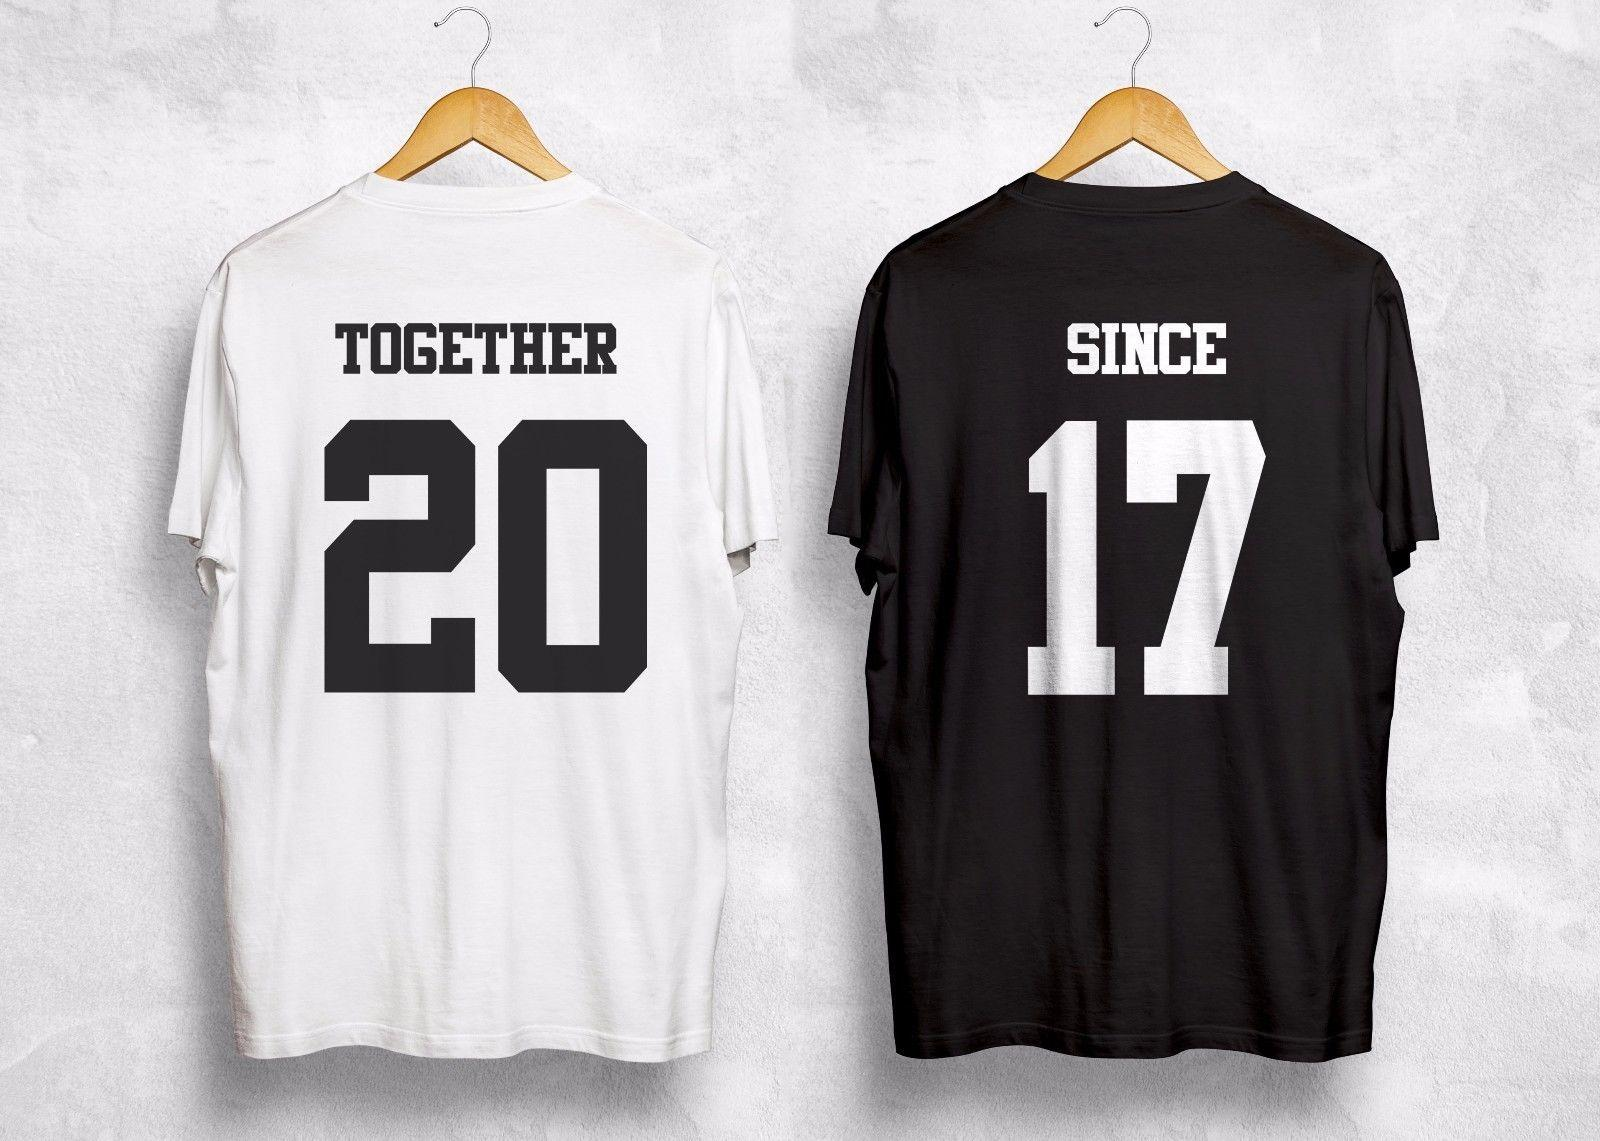 862646e4bb Together Since Any Year T Shirt Personalized Custom Valentines Gift Couple  Wifey Cotton Short Sleeved O Neck T Shirts Euro Size Online Tee Shirts  Shopping ...